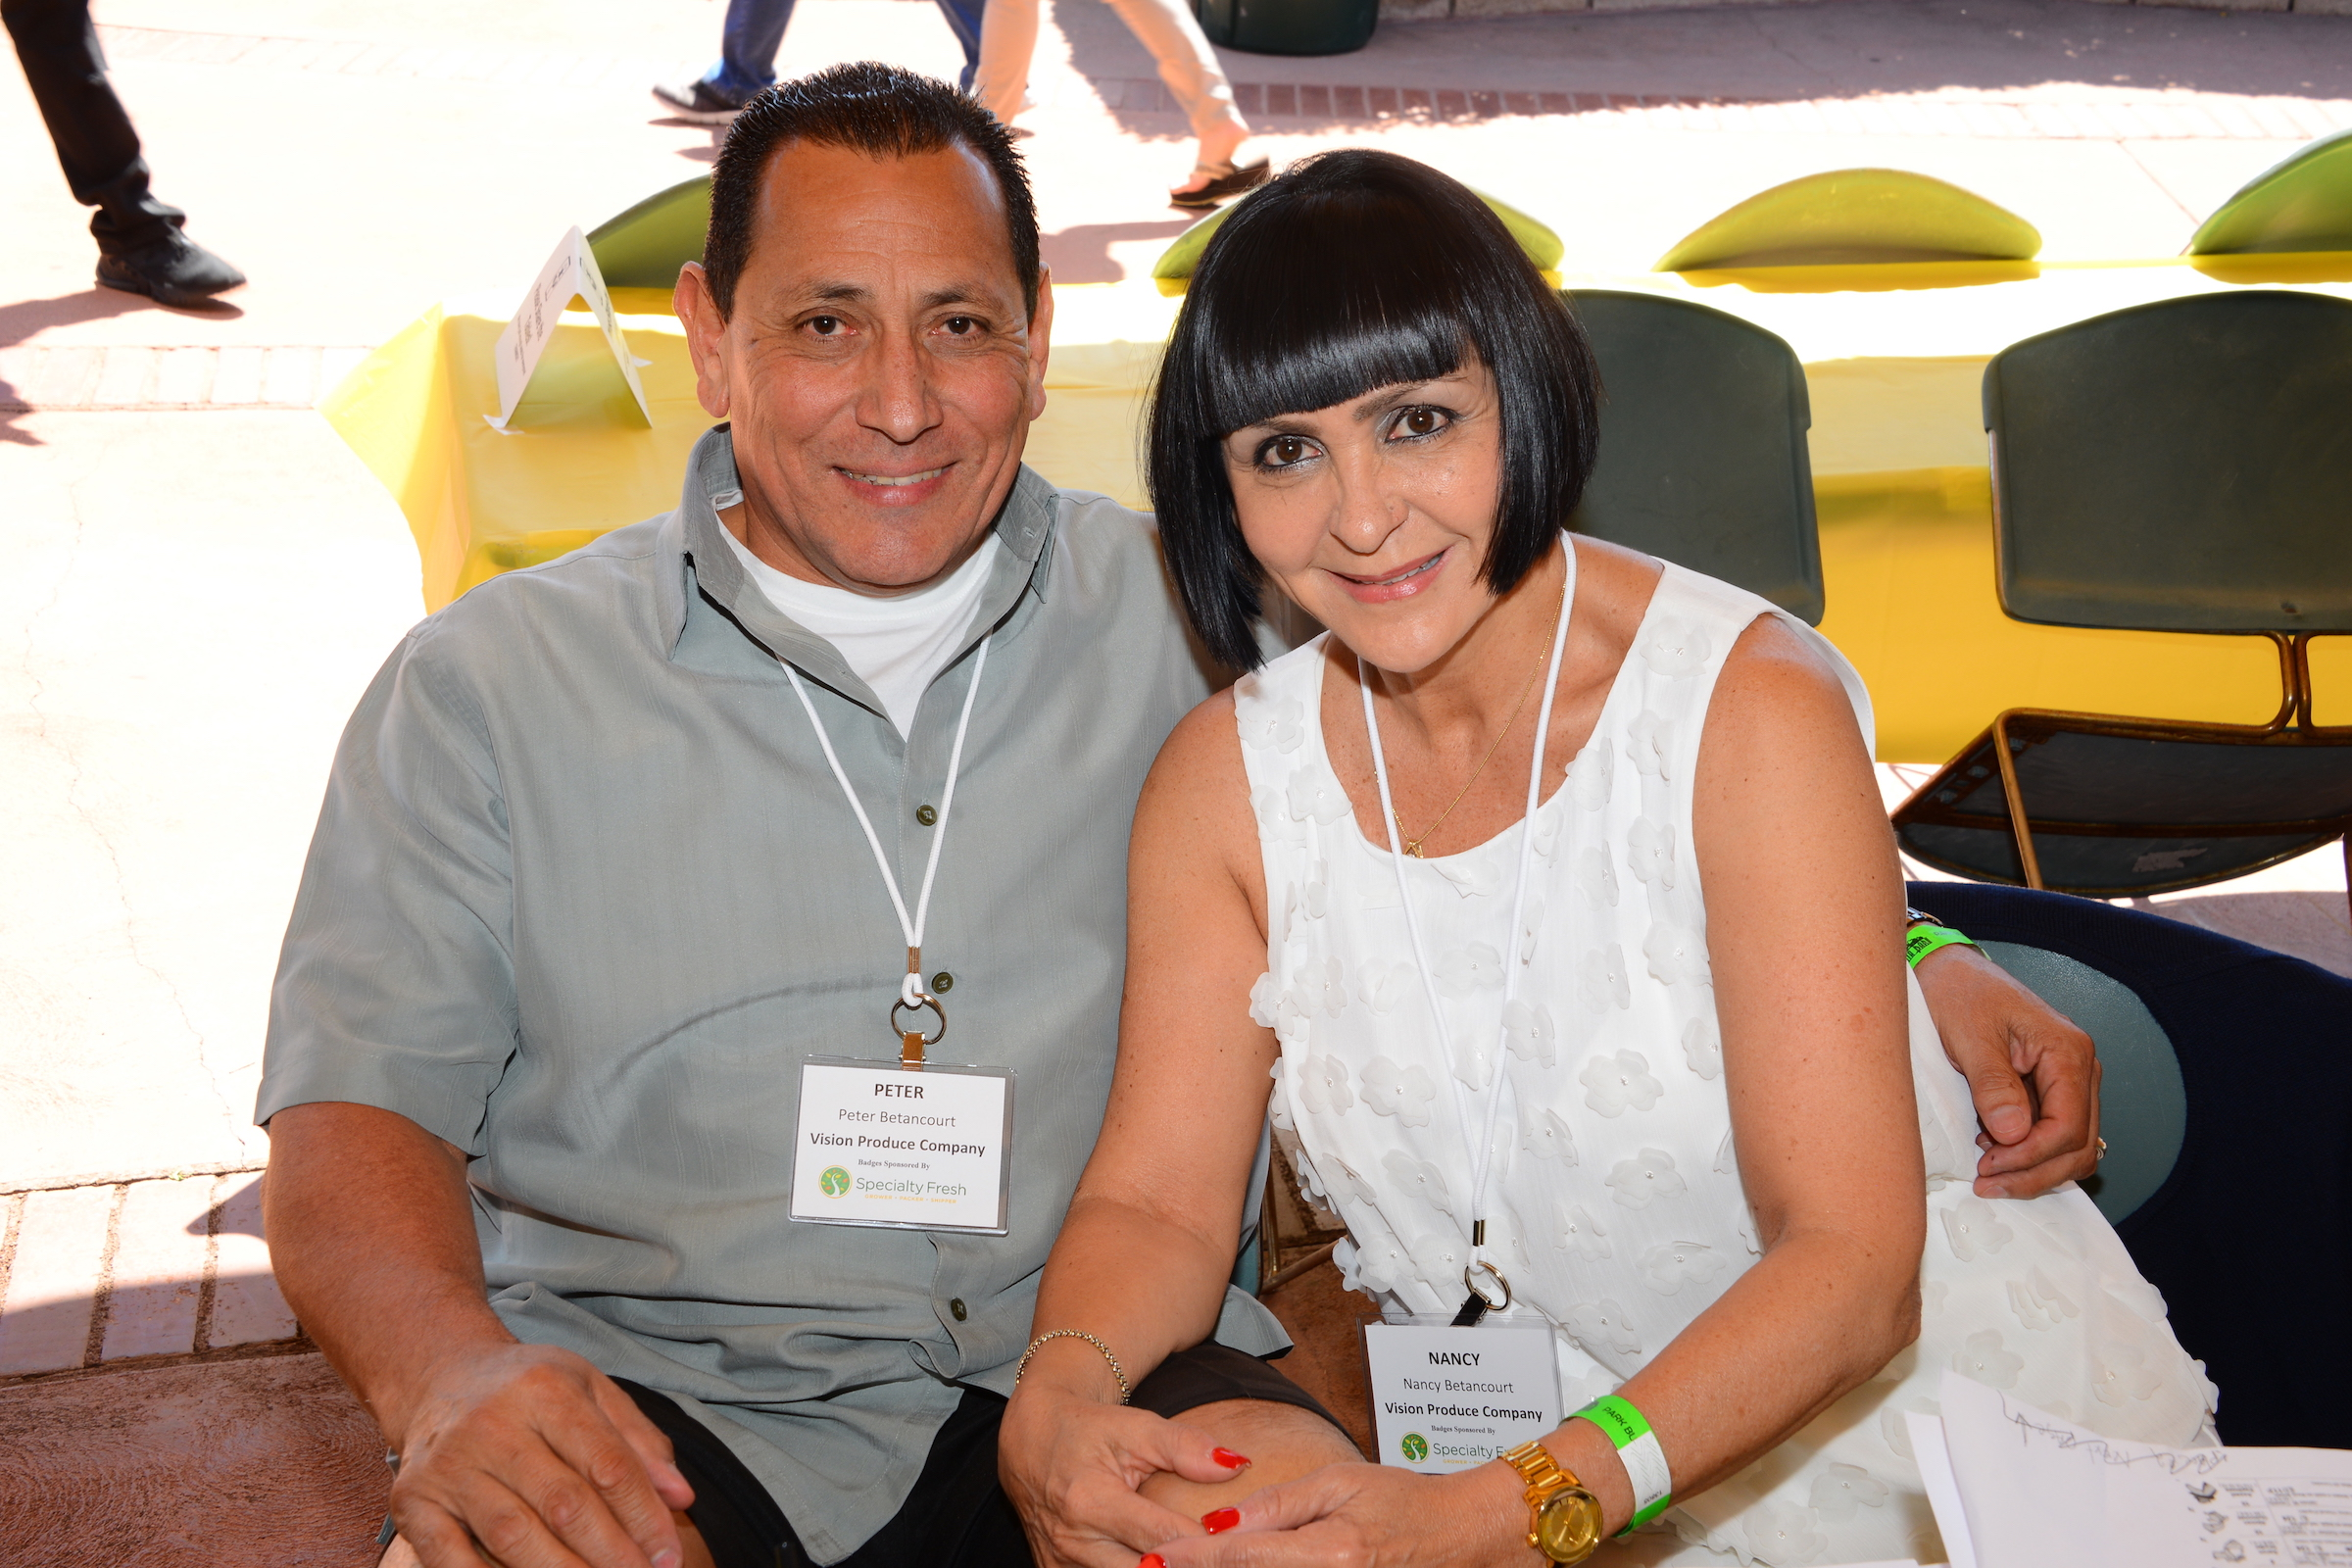 Peter and Nancy Betancourt from Vision Produce Company